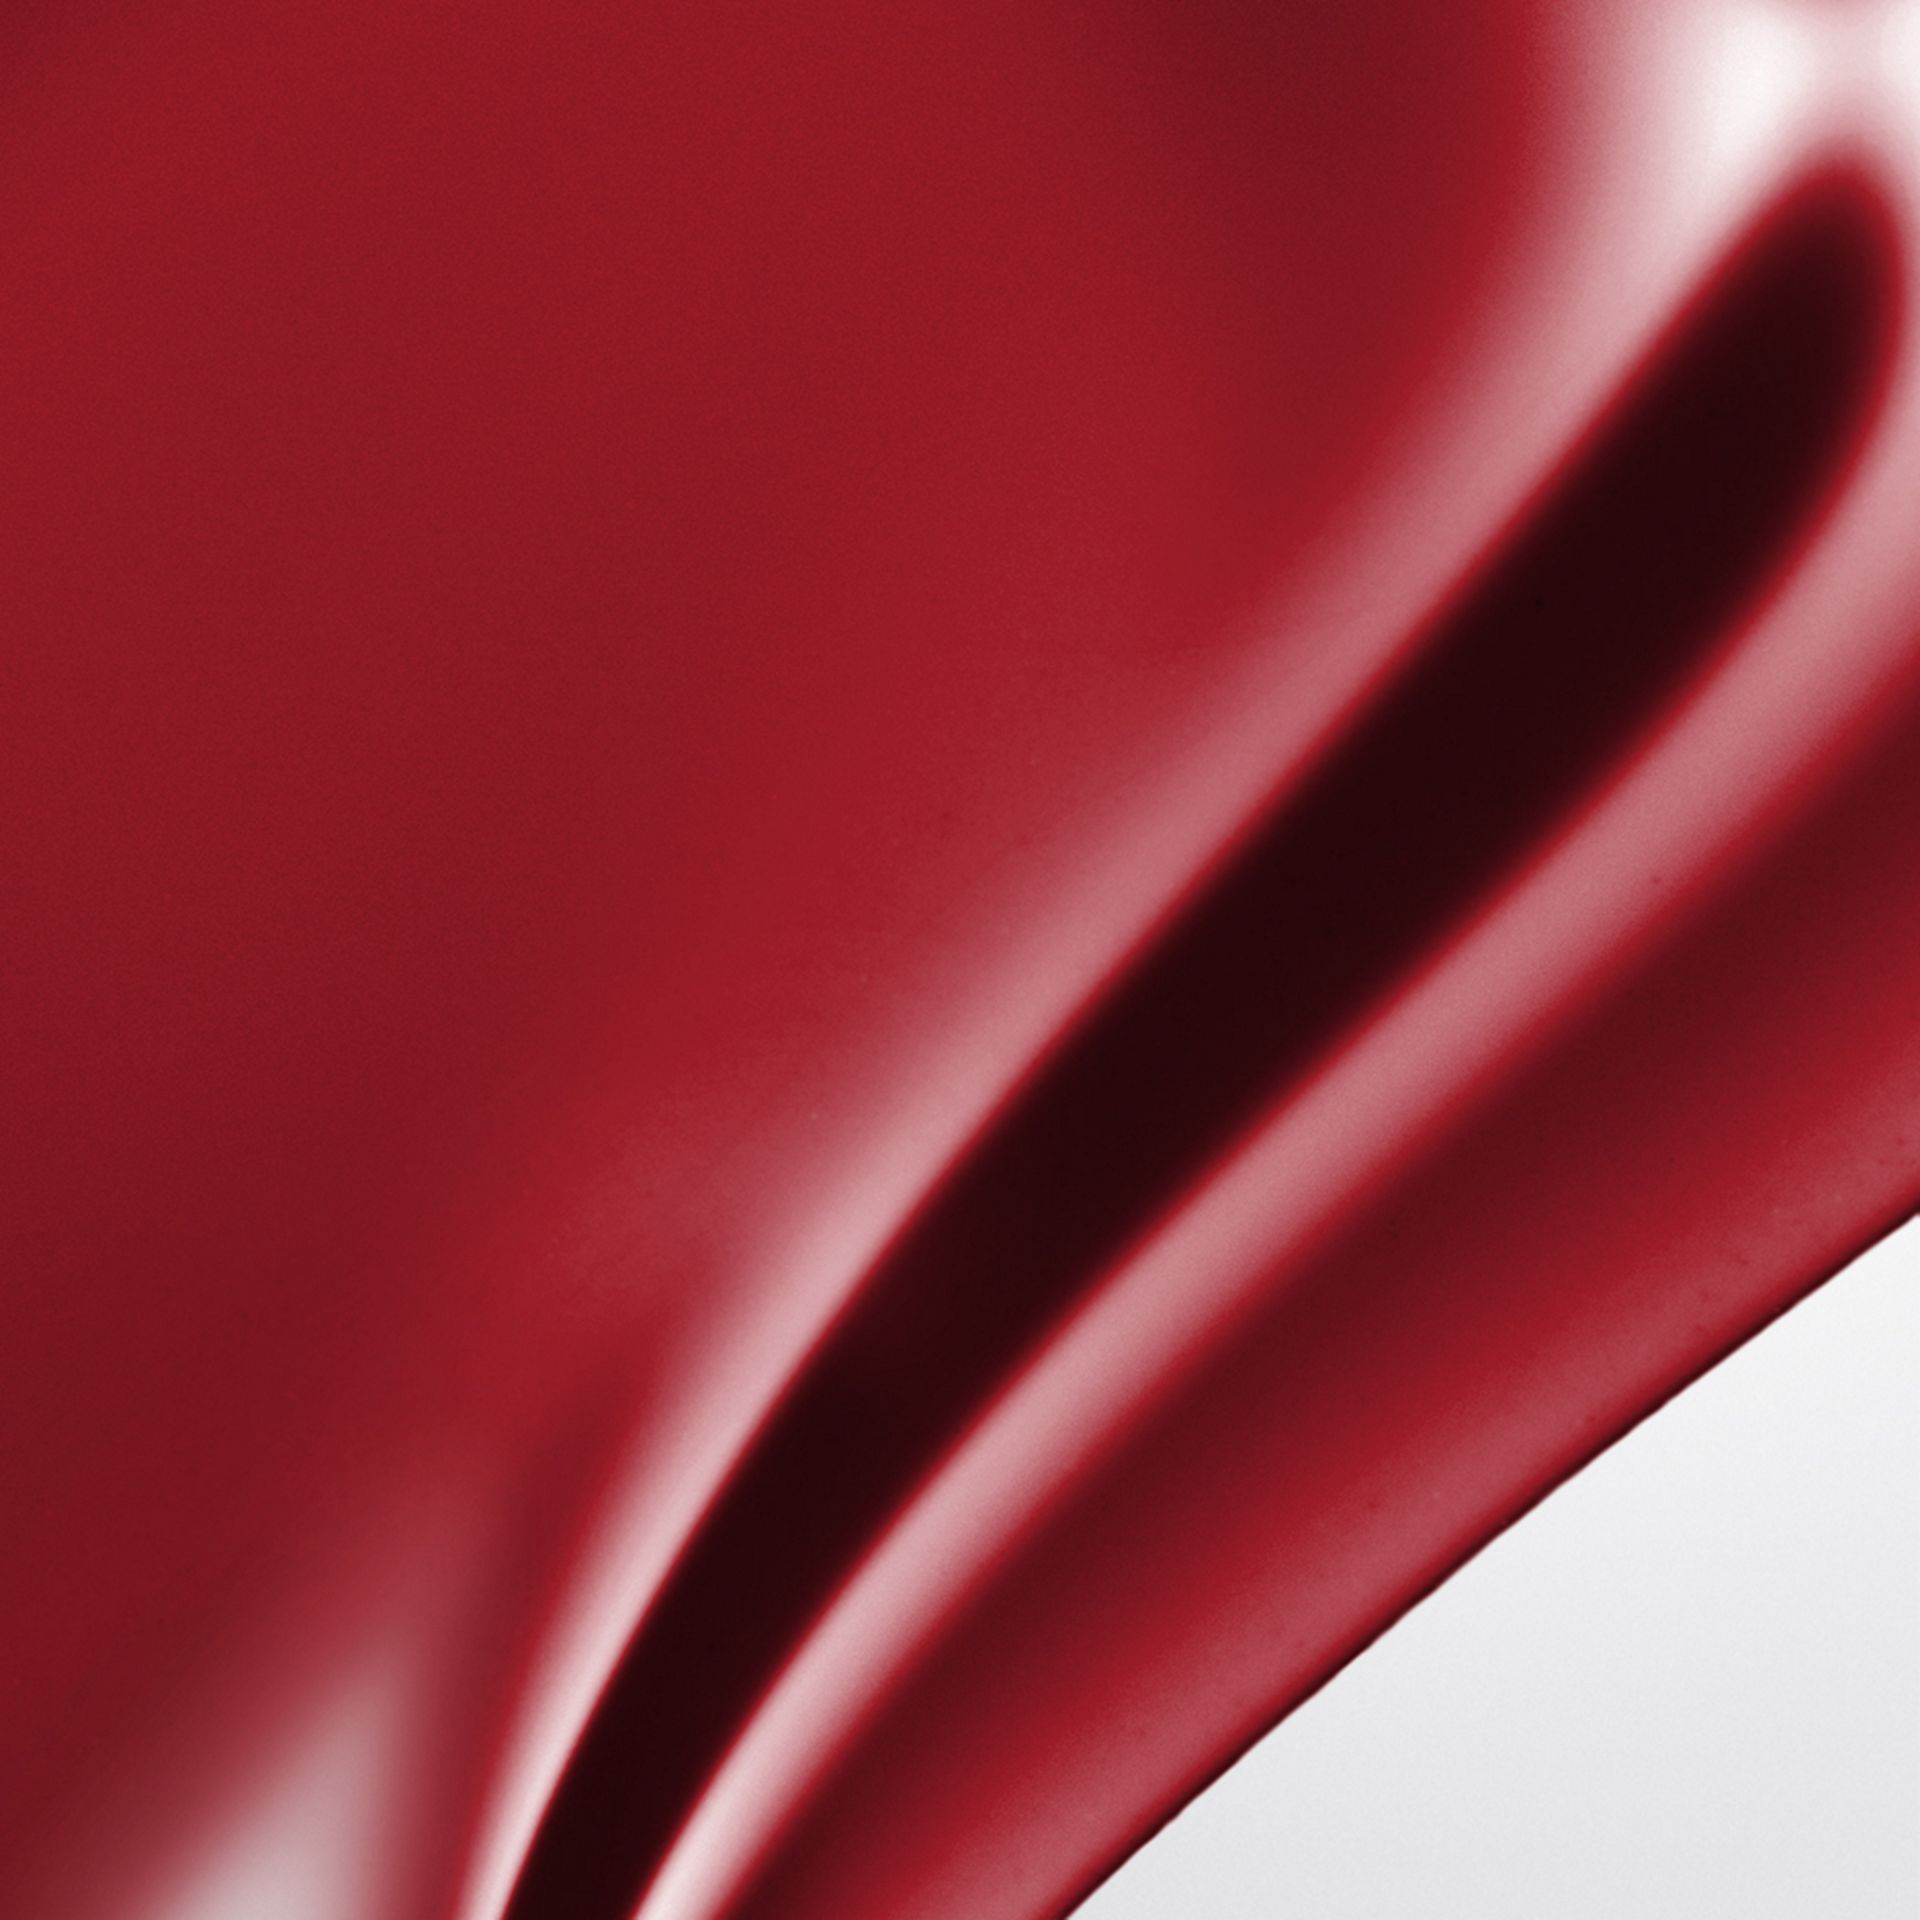 Oxblood 23 Lip Glow - Oxblood No.23 - gallery image 2